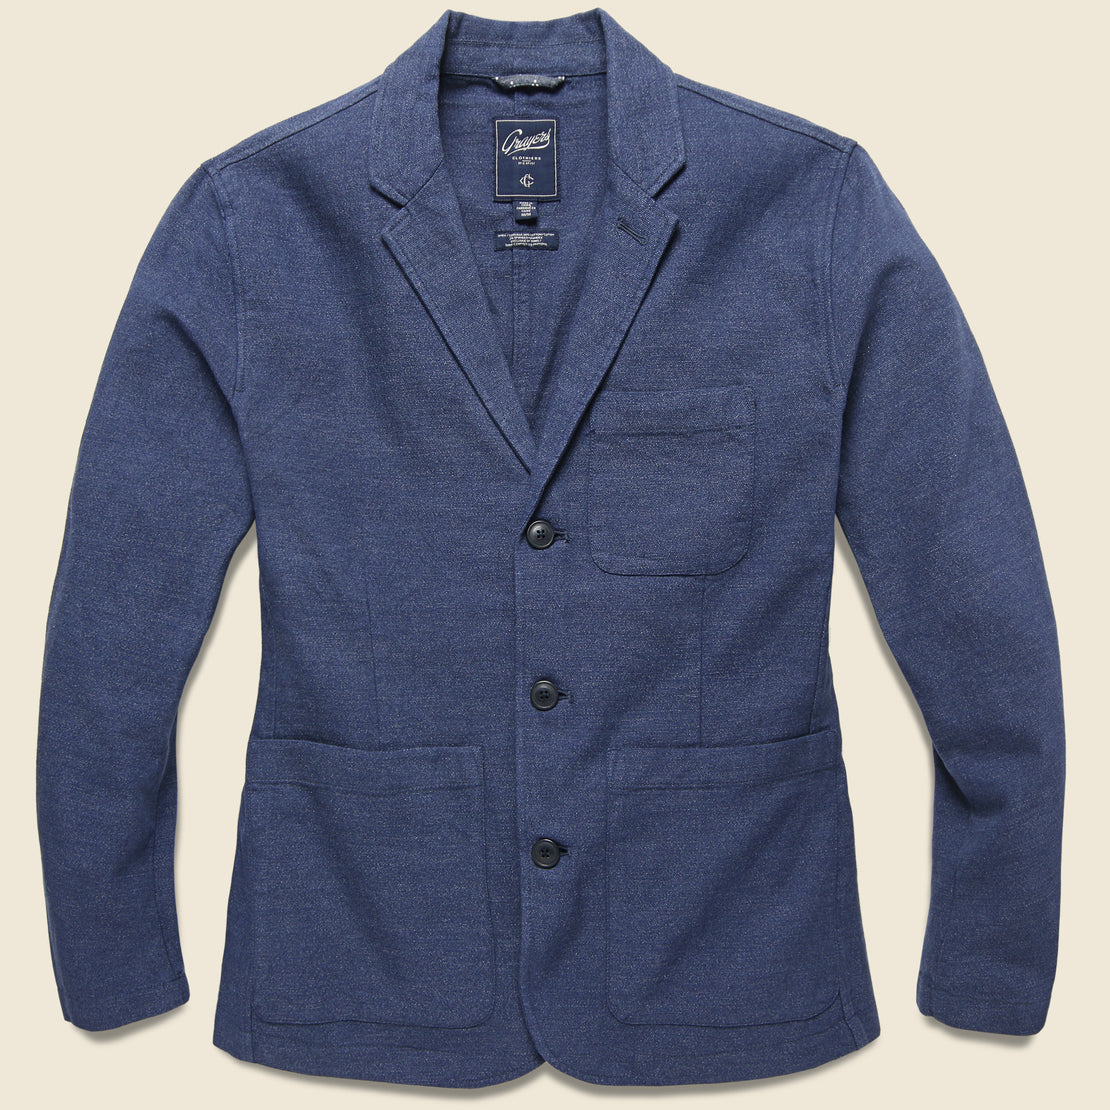 Grayers Poindexter Sportcoat - Navy Heather